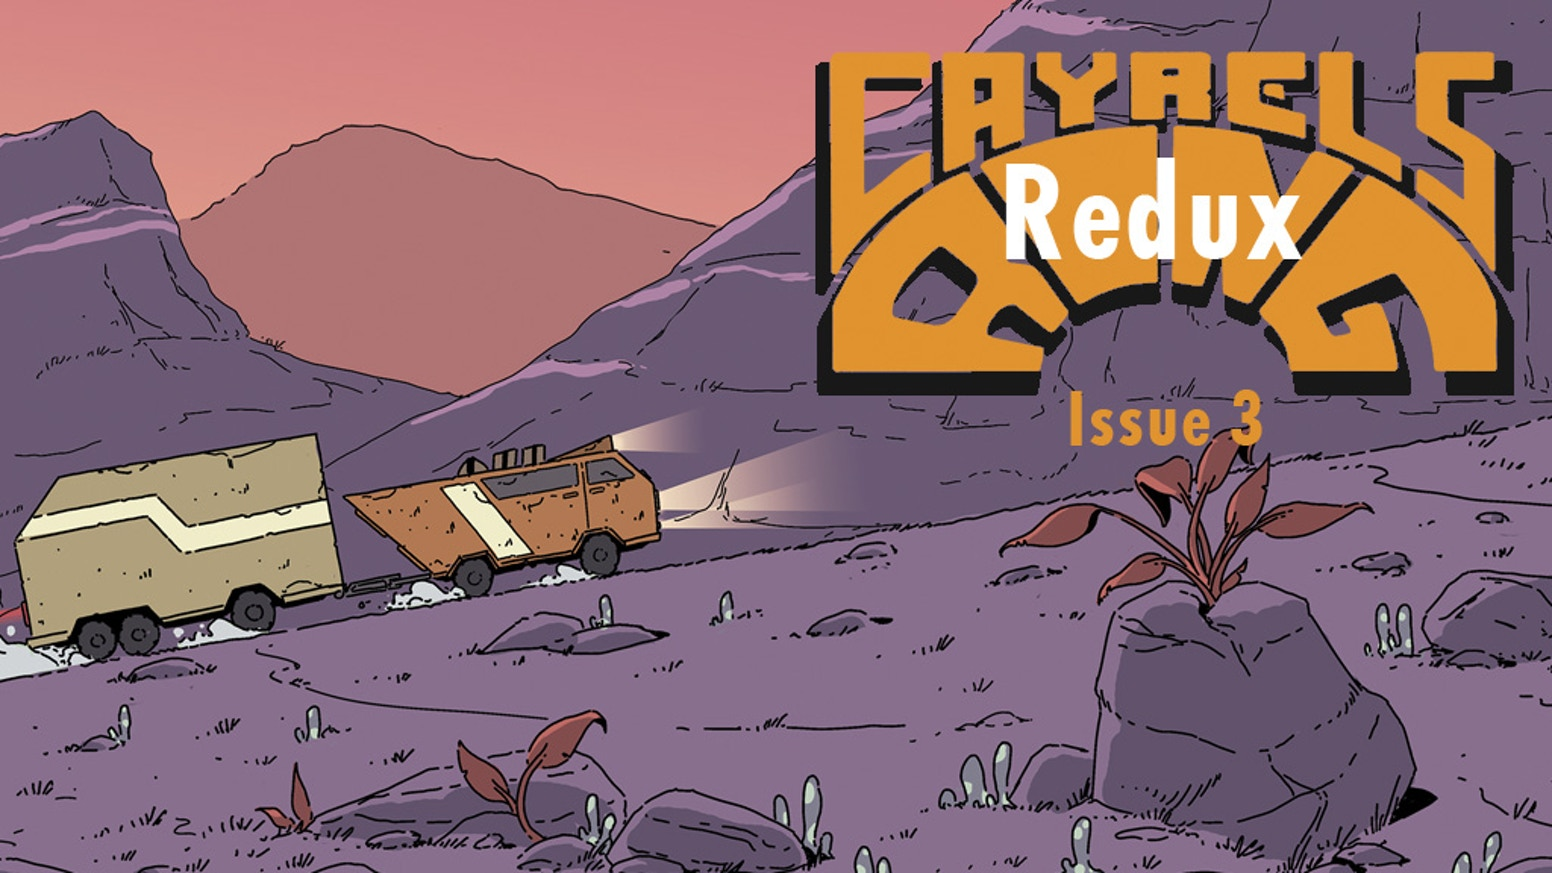 Cayrels Ring 3 Redux - The final 48pg issue is the top crowdfunding project launched today. Cayrels Ring 3 Redux - The final 48pg issue raised over $8210 from 205 backers. Other top projects include Ukiyo-e Cats: A Hard Enamel Pin Set, Editorial JARL, Narrator...